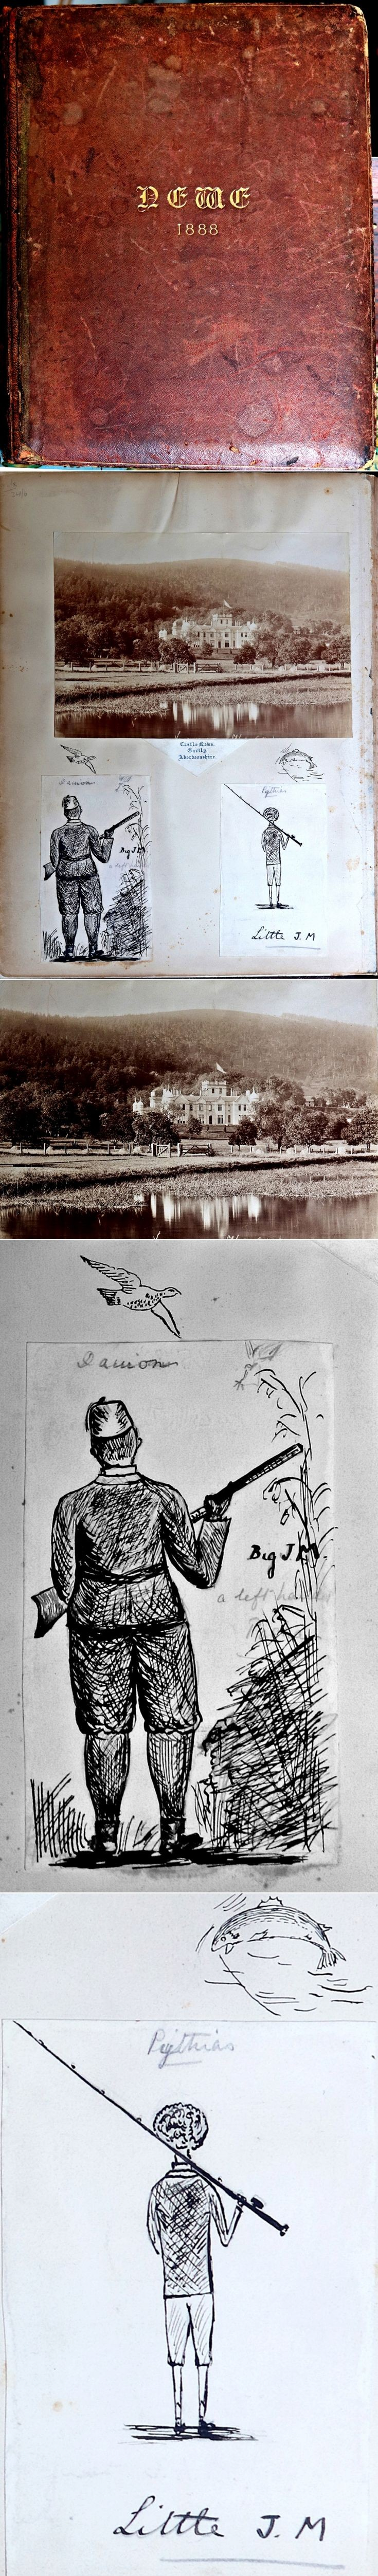 18 Castle Newe Visitirs Book from 1888